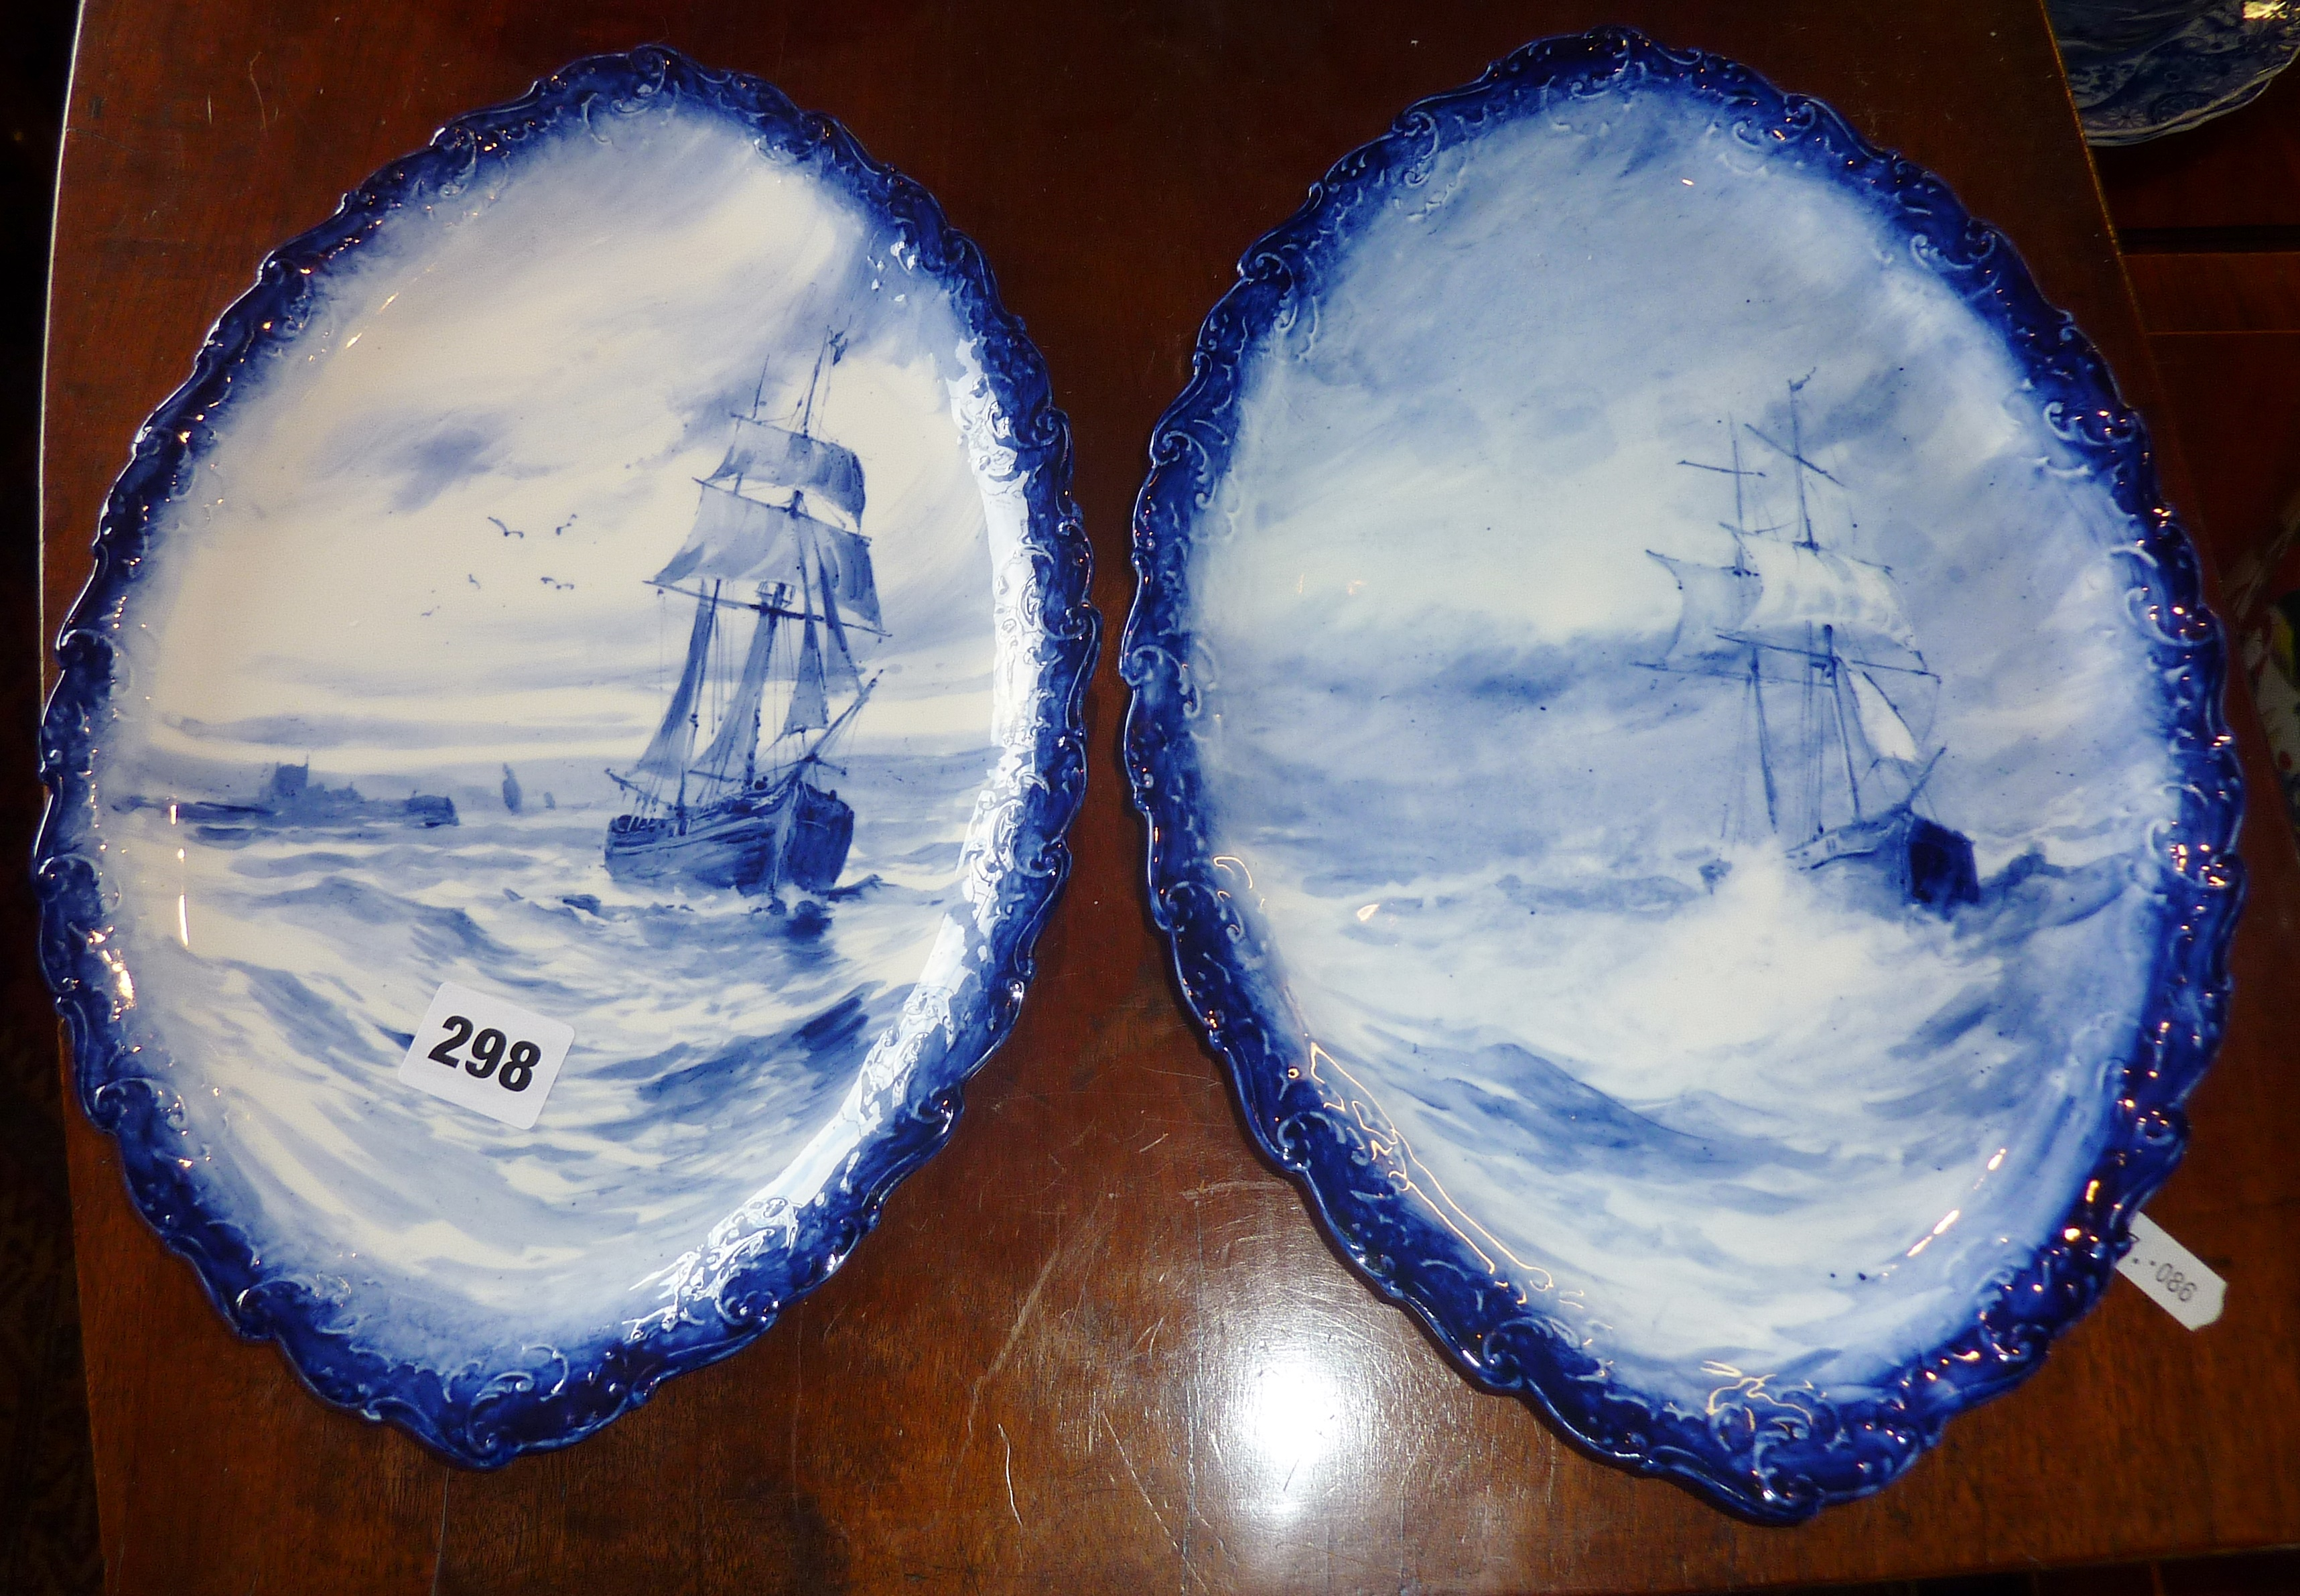 Lot 298 - Pair of Royal Crown Derby blue and white shaped plaques with sailing vessels decoration